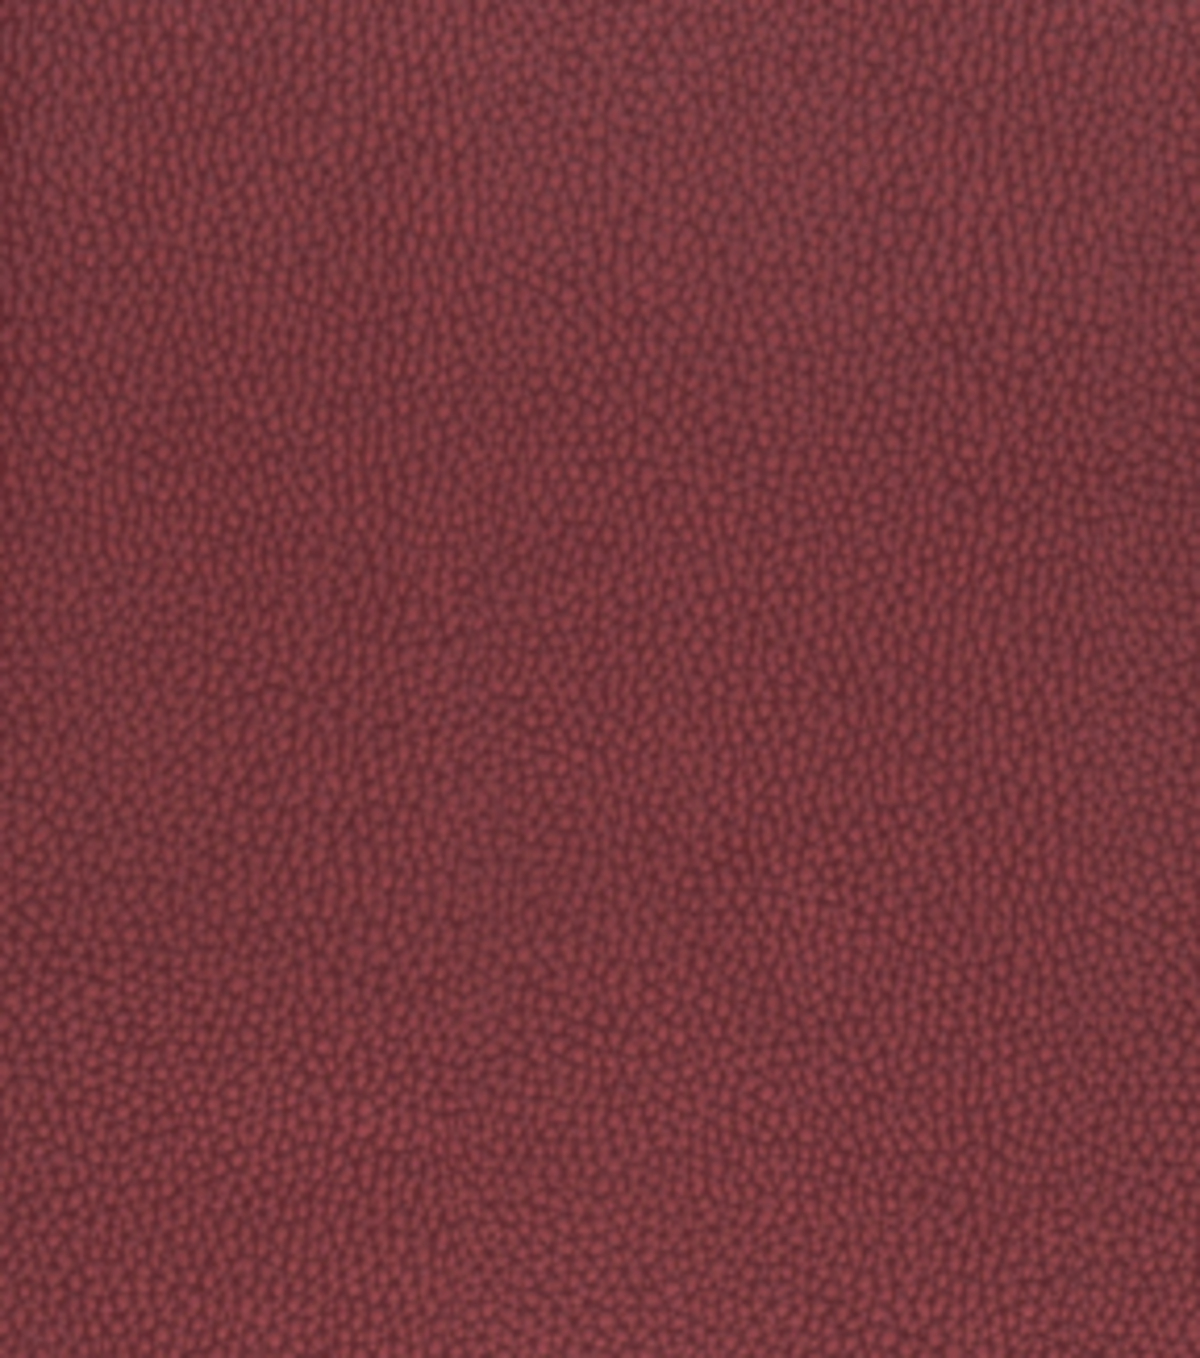 Home Decor 8\u0022x8\u0022 Fabric Swatch-Signature Series Abraham Raspberry